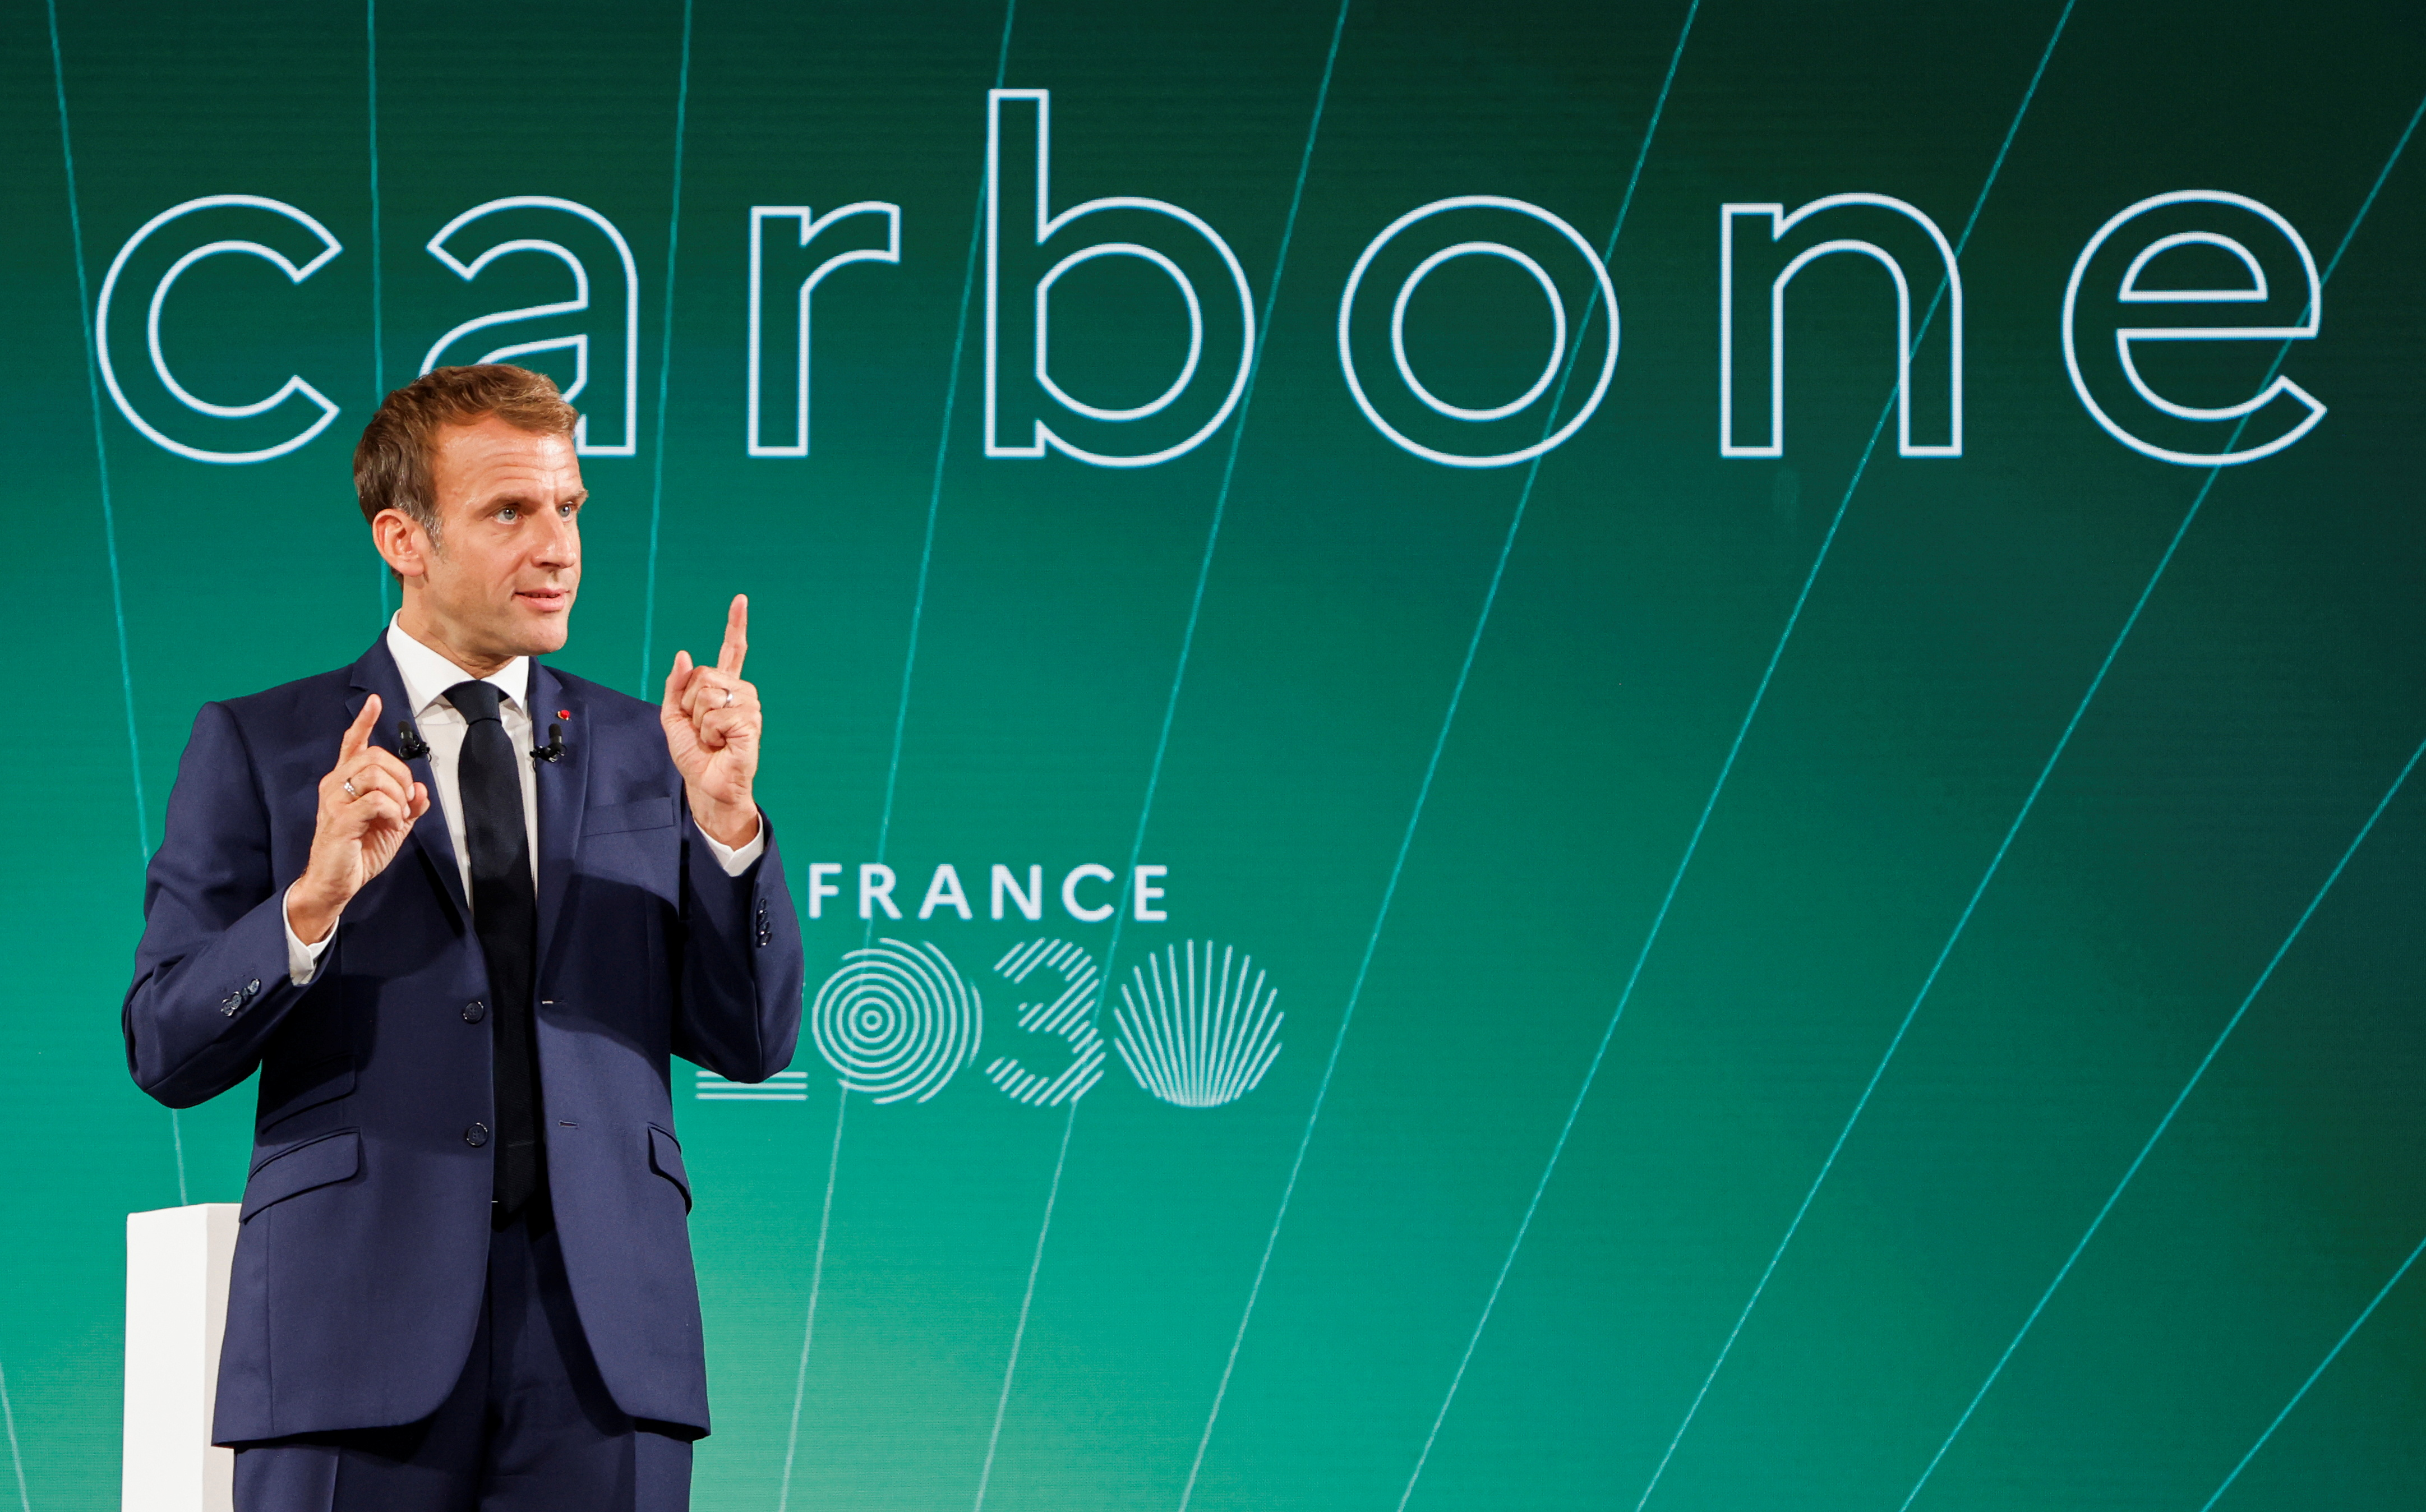 French President Emmanuel Macron gestures as he speaks during the presentation of the